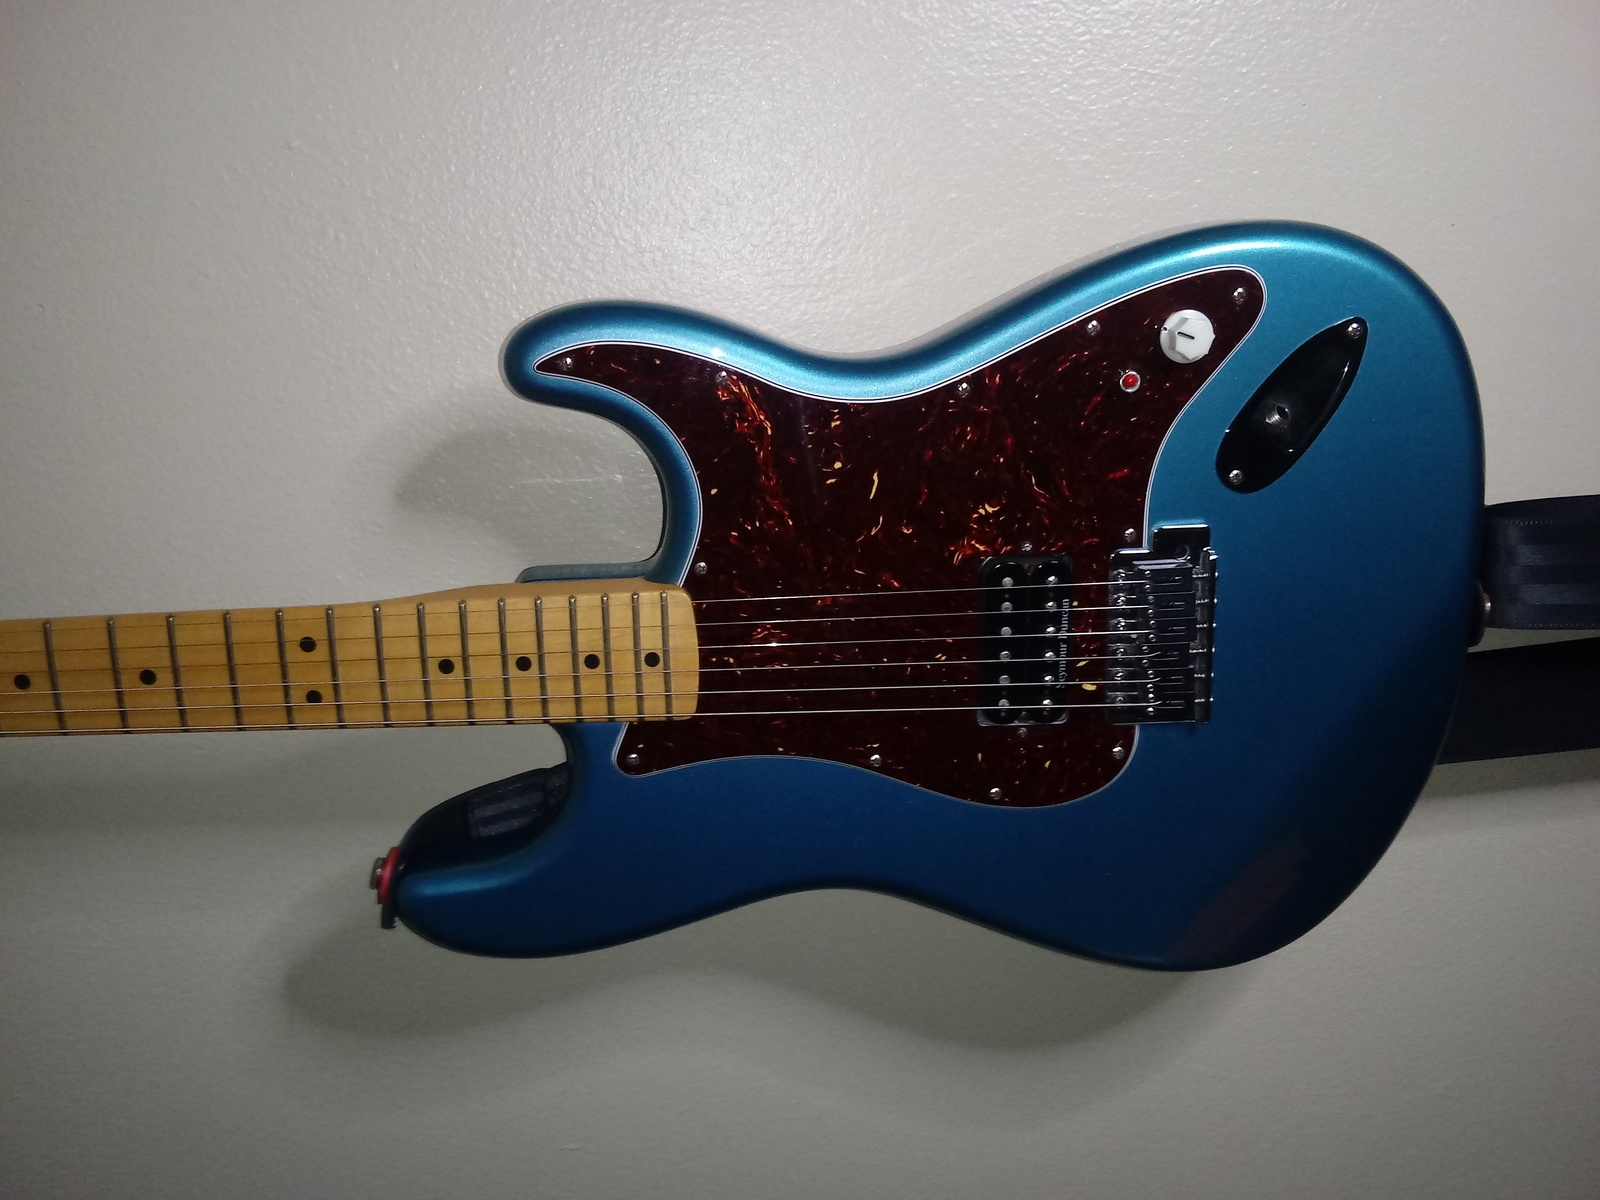 Photo of Fender Custom Shop Stratocaster in a guitar